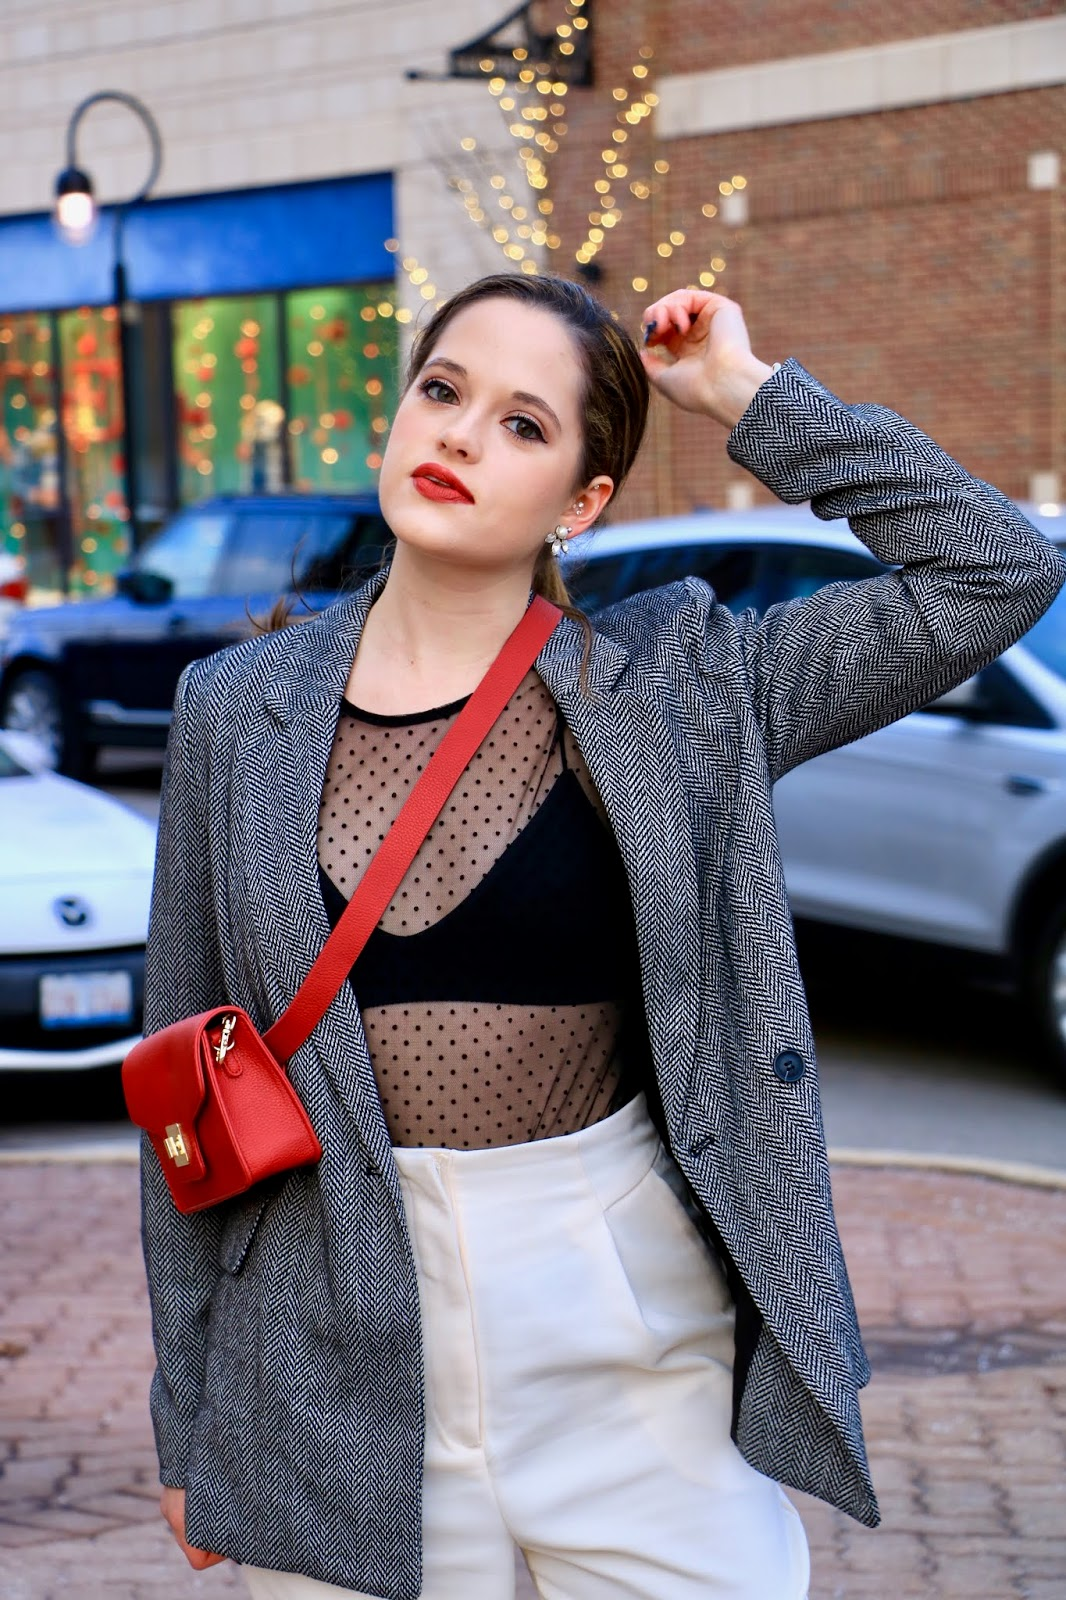 Nyc fashion blogger Kathleen Harper showing how to wear a sheer top with a bralette.